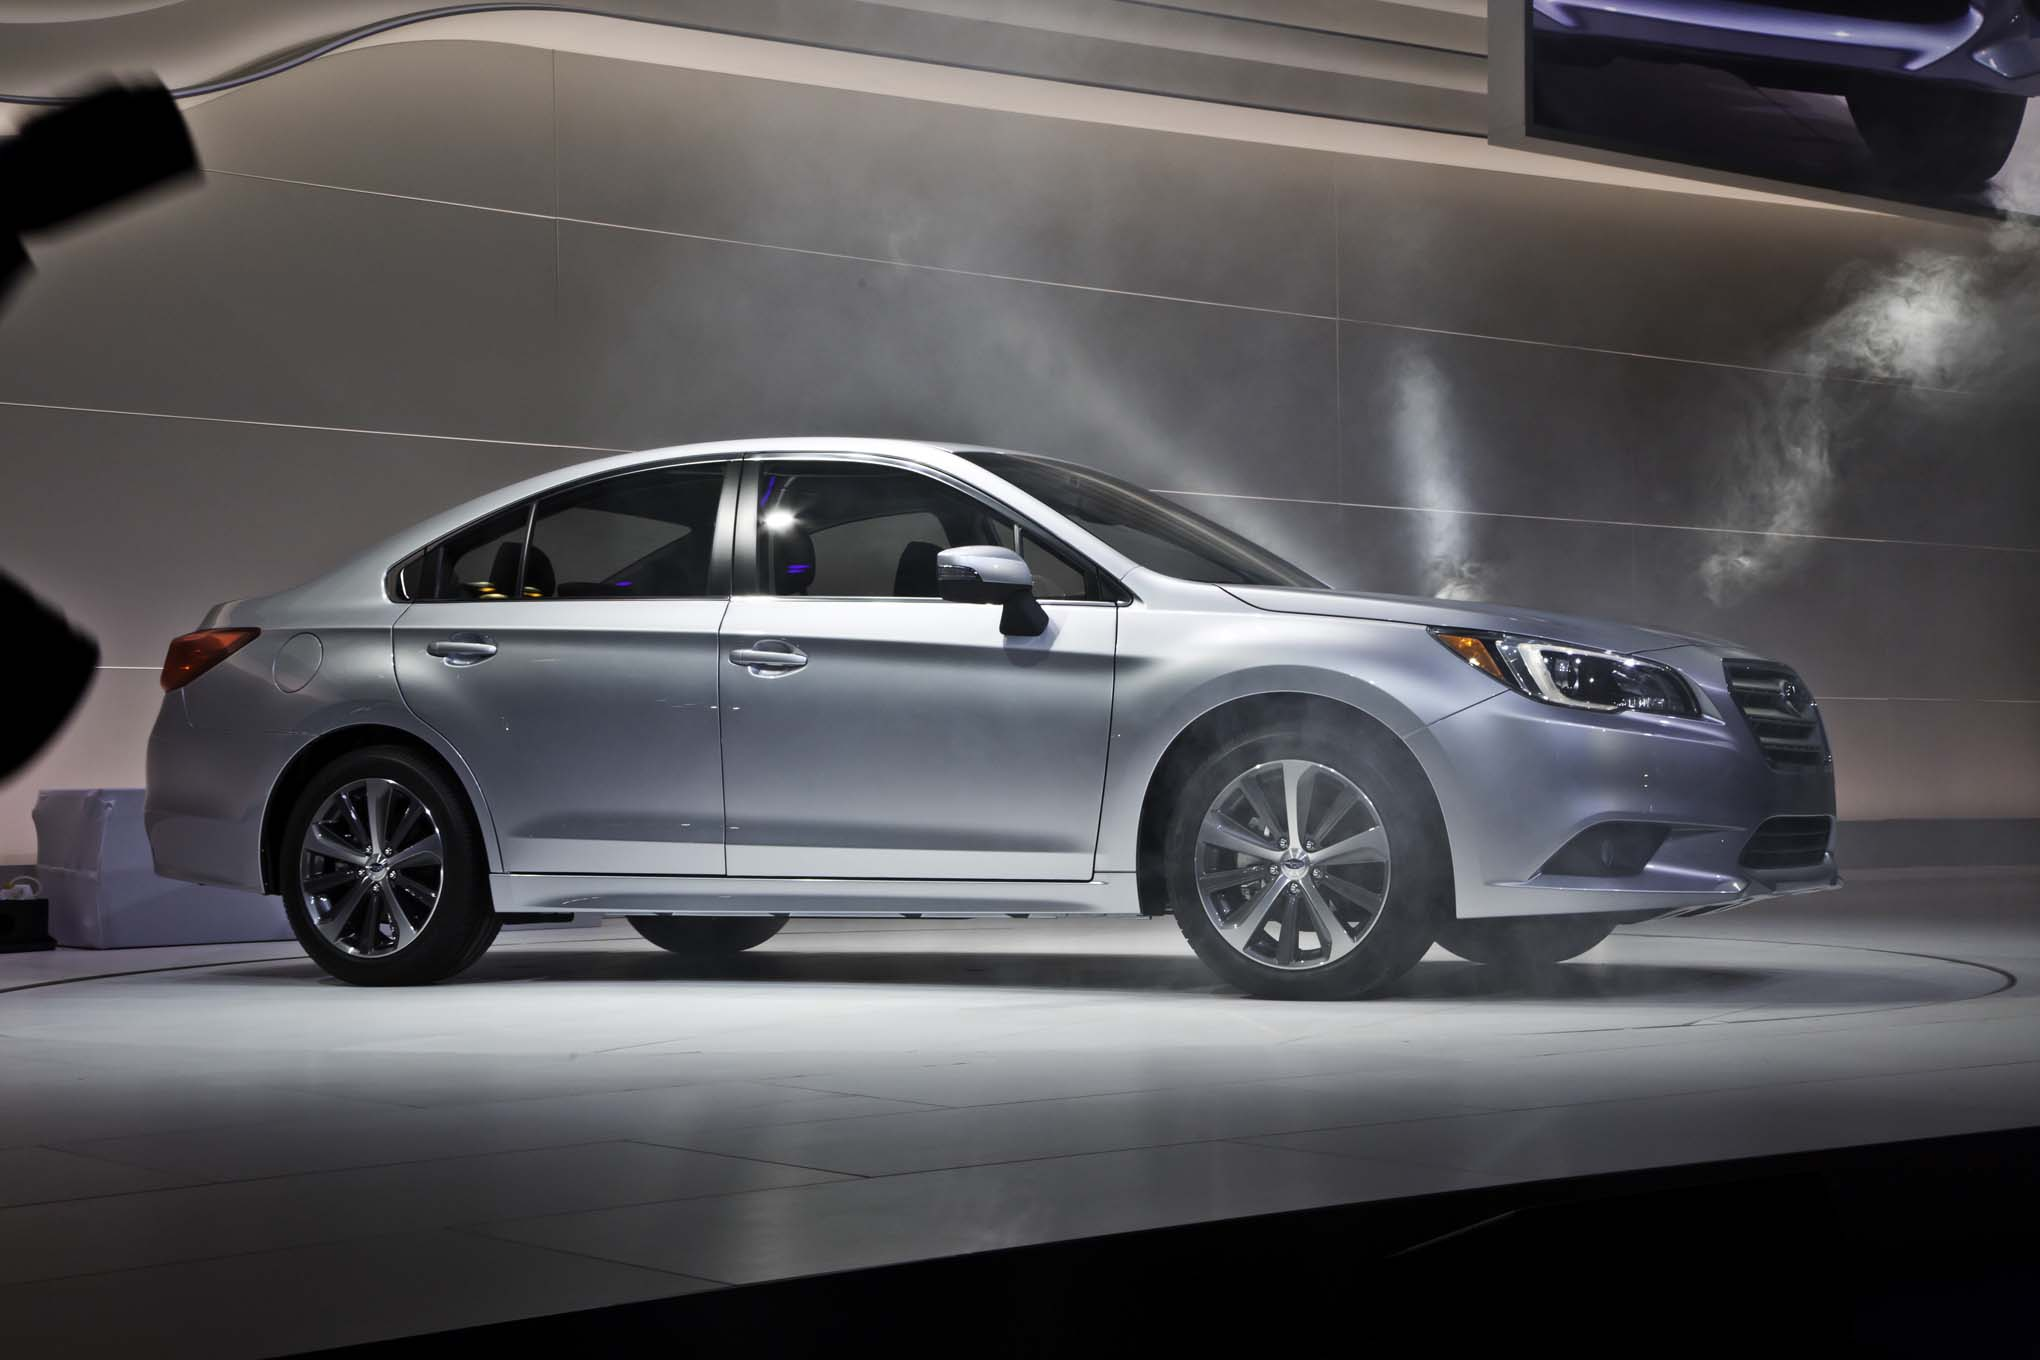 2015 Subaru Legacy Side Profile